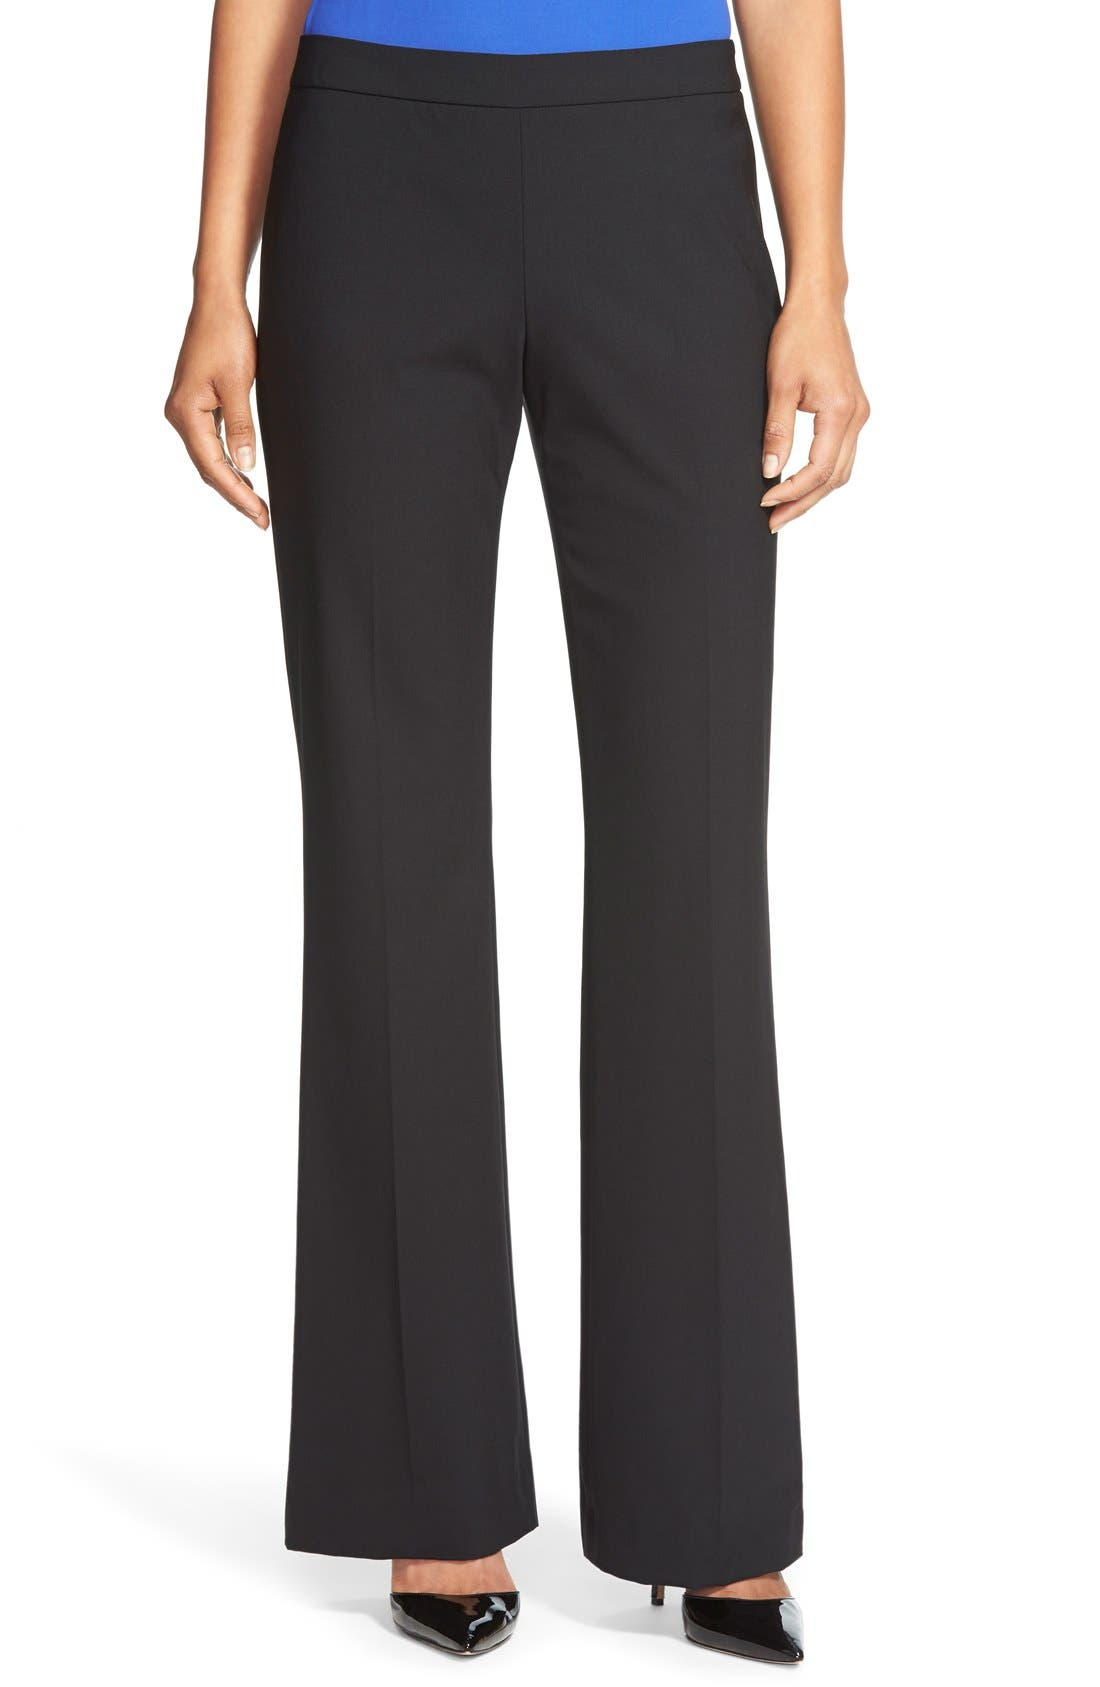 Tulea Side Zip Tropical Stretch Wool Trousers,                         Main,                         color, BLACK